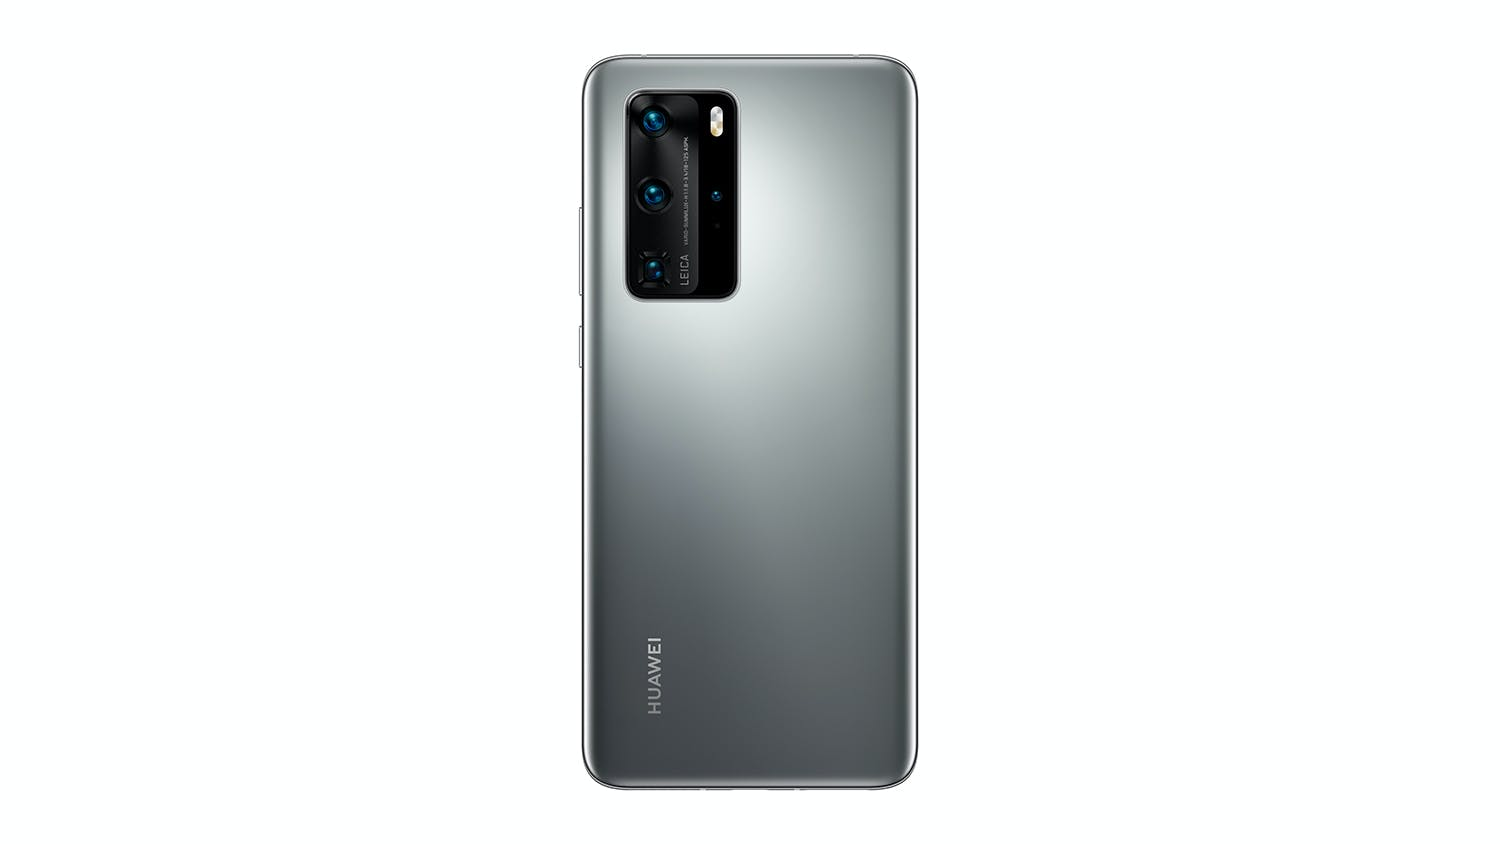 Huawei P40 Pro Smartphone - Silver Frost